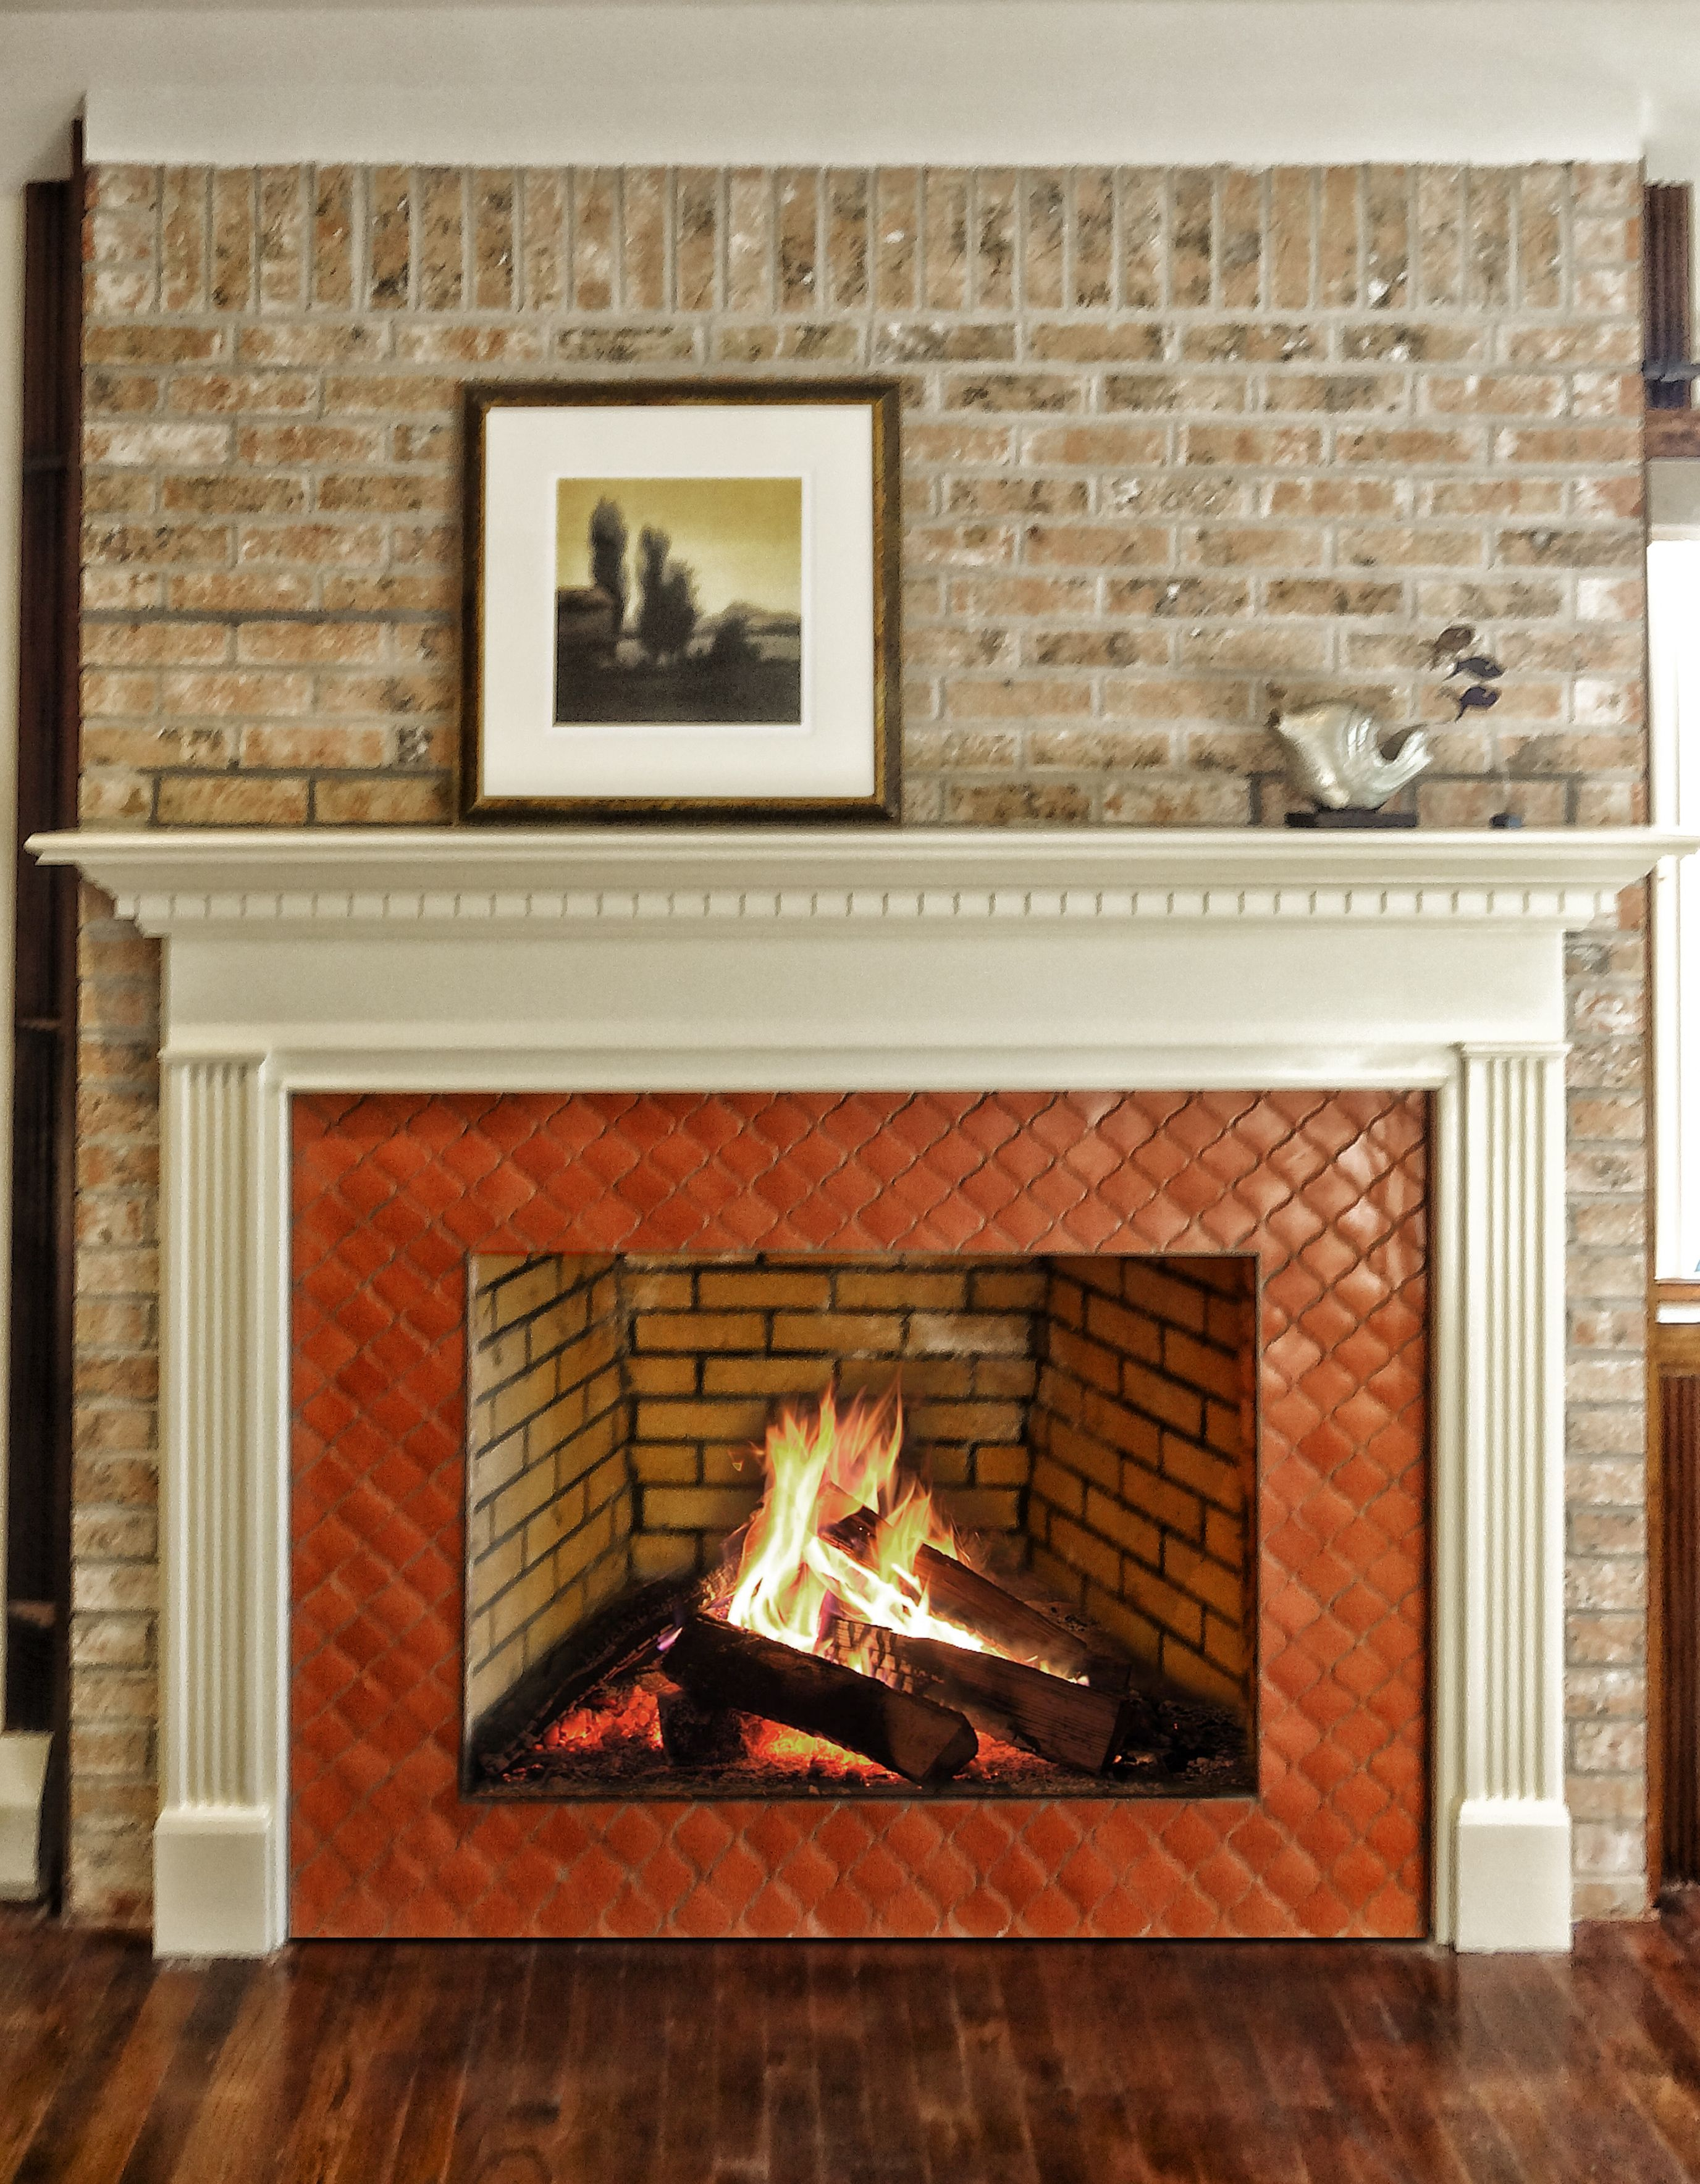 New Wood Mantel And Arabesque Tile Complementing The Weathered